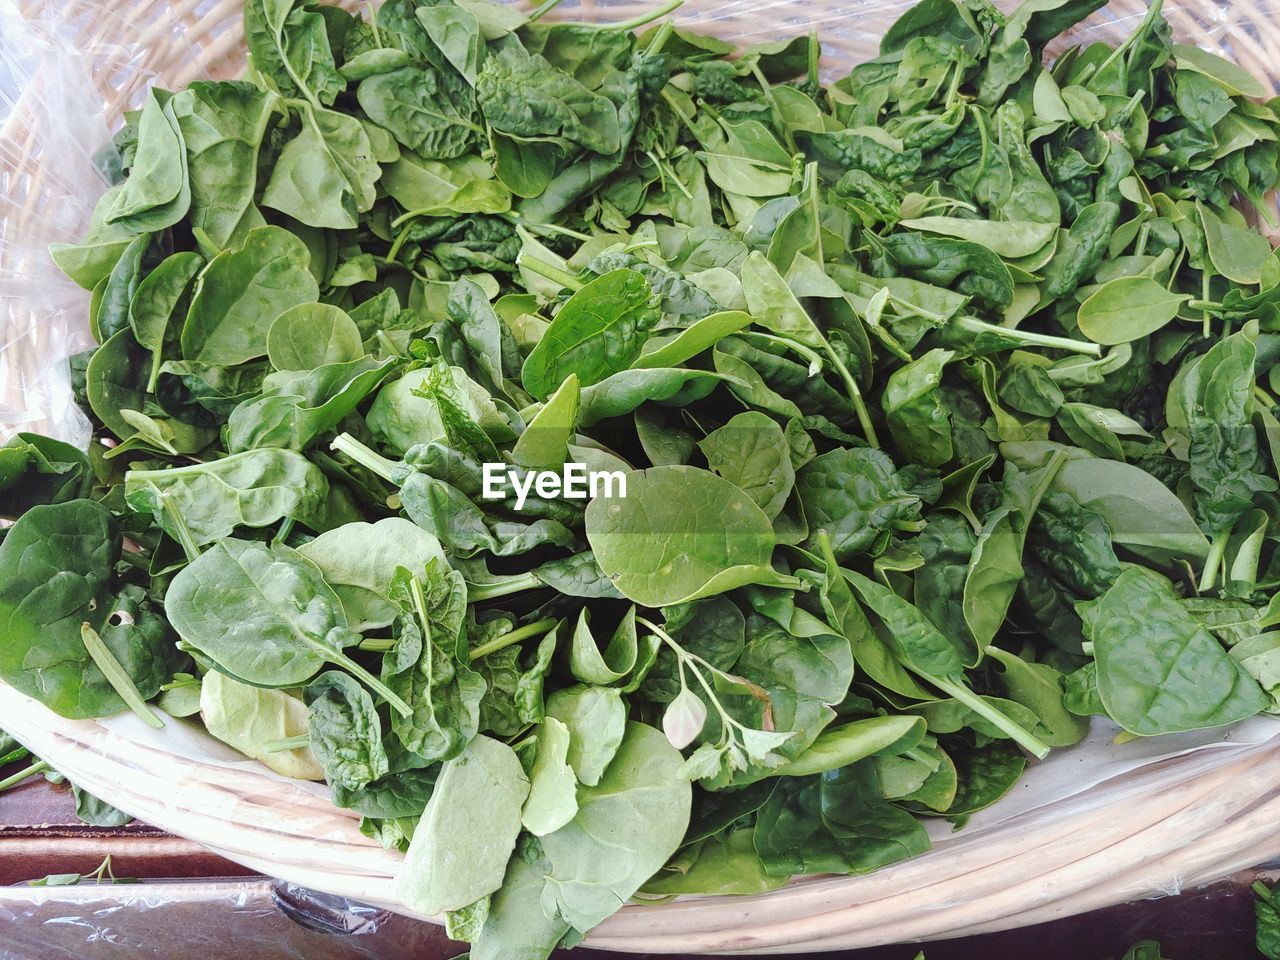 food and drink, healthy eating, food, green color, vegetable, wellbeing, freshness, leaf vegetable, close-up, no people, plant part, raw food, leaf, still life, green, lettuce, indoors, day, high angle view, spinach, leaves, vegetarian food, arugula